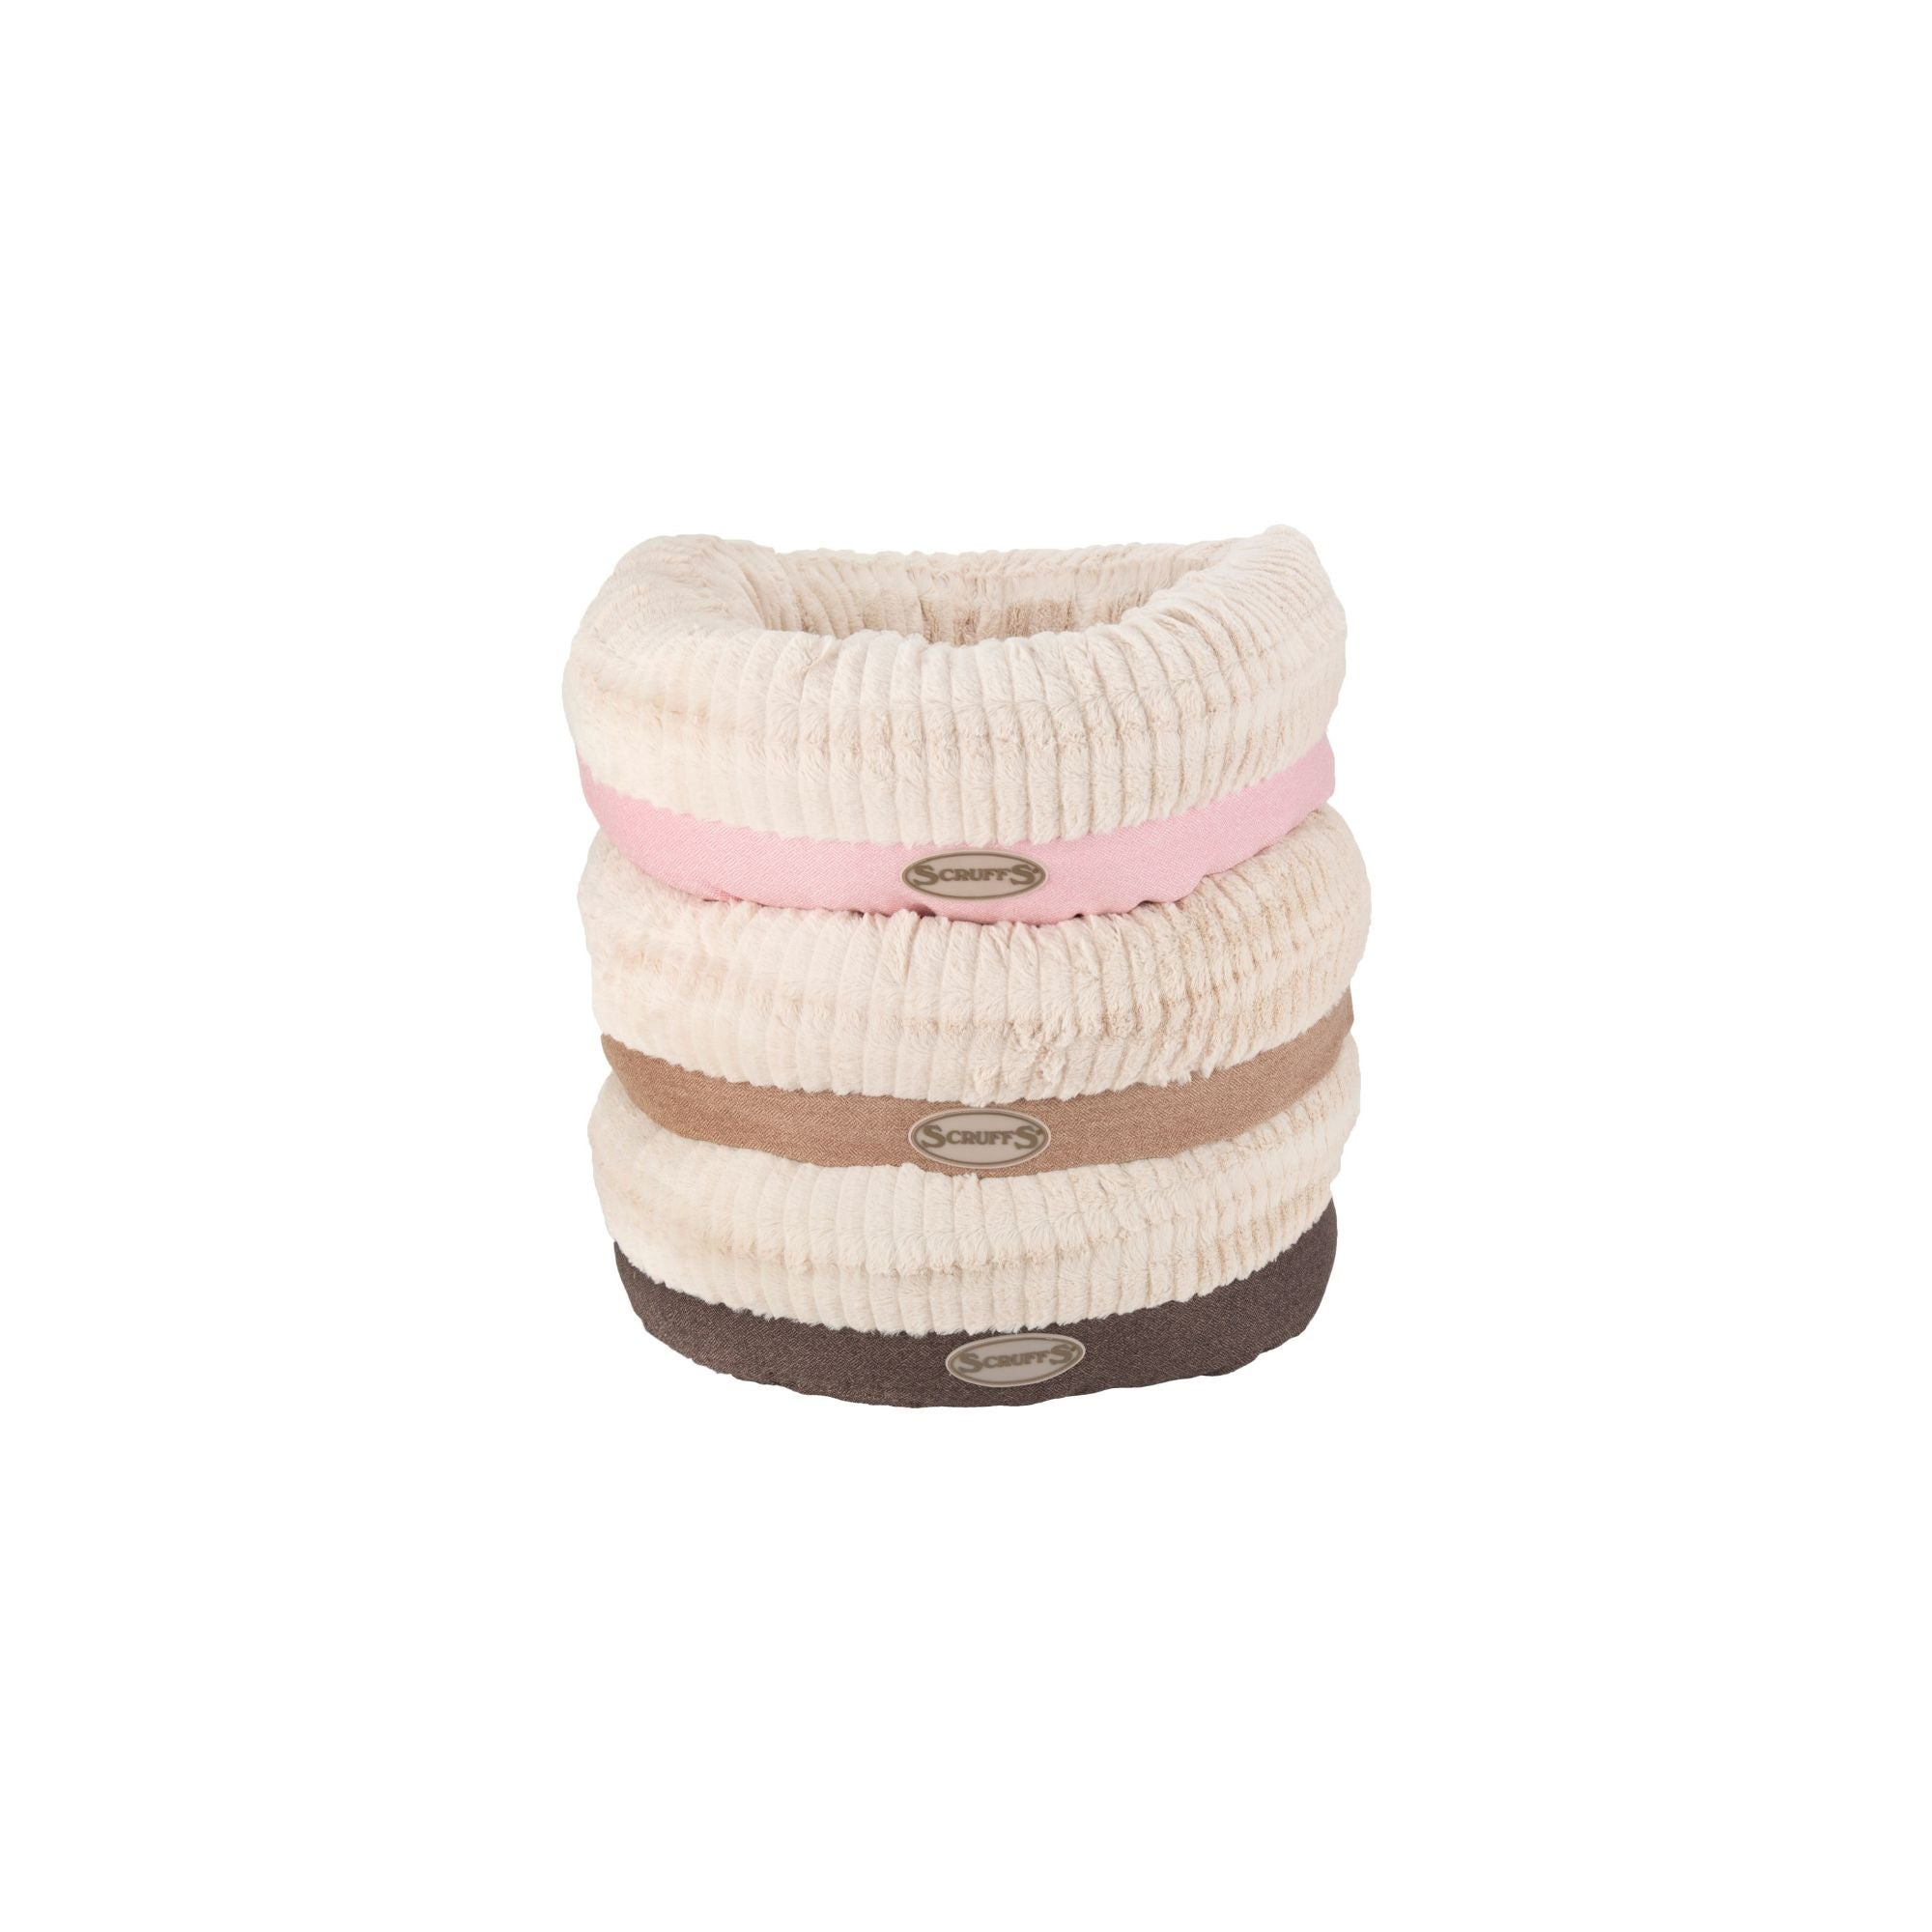 Scruffs Ellen Donut Bed, Round Tweed Dog Bed | Barks & Bunnies